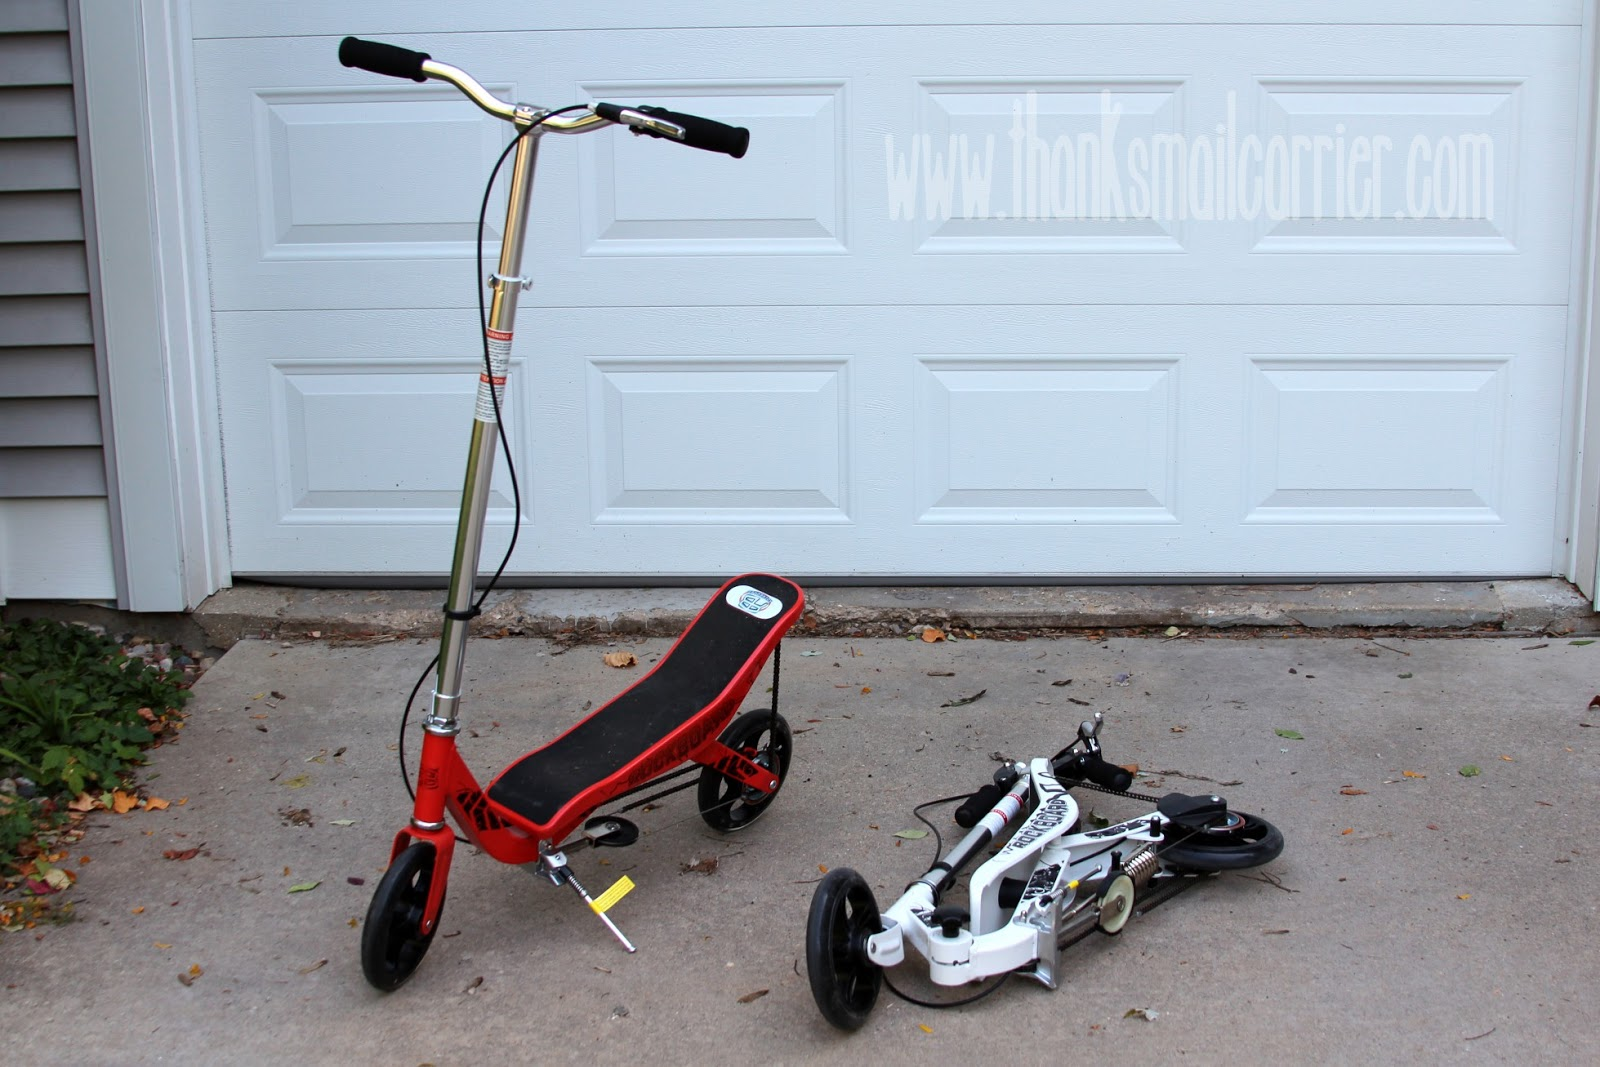 Rockboard Scooter storage